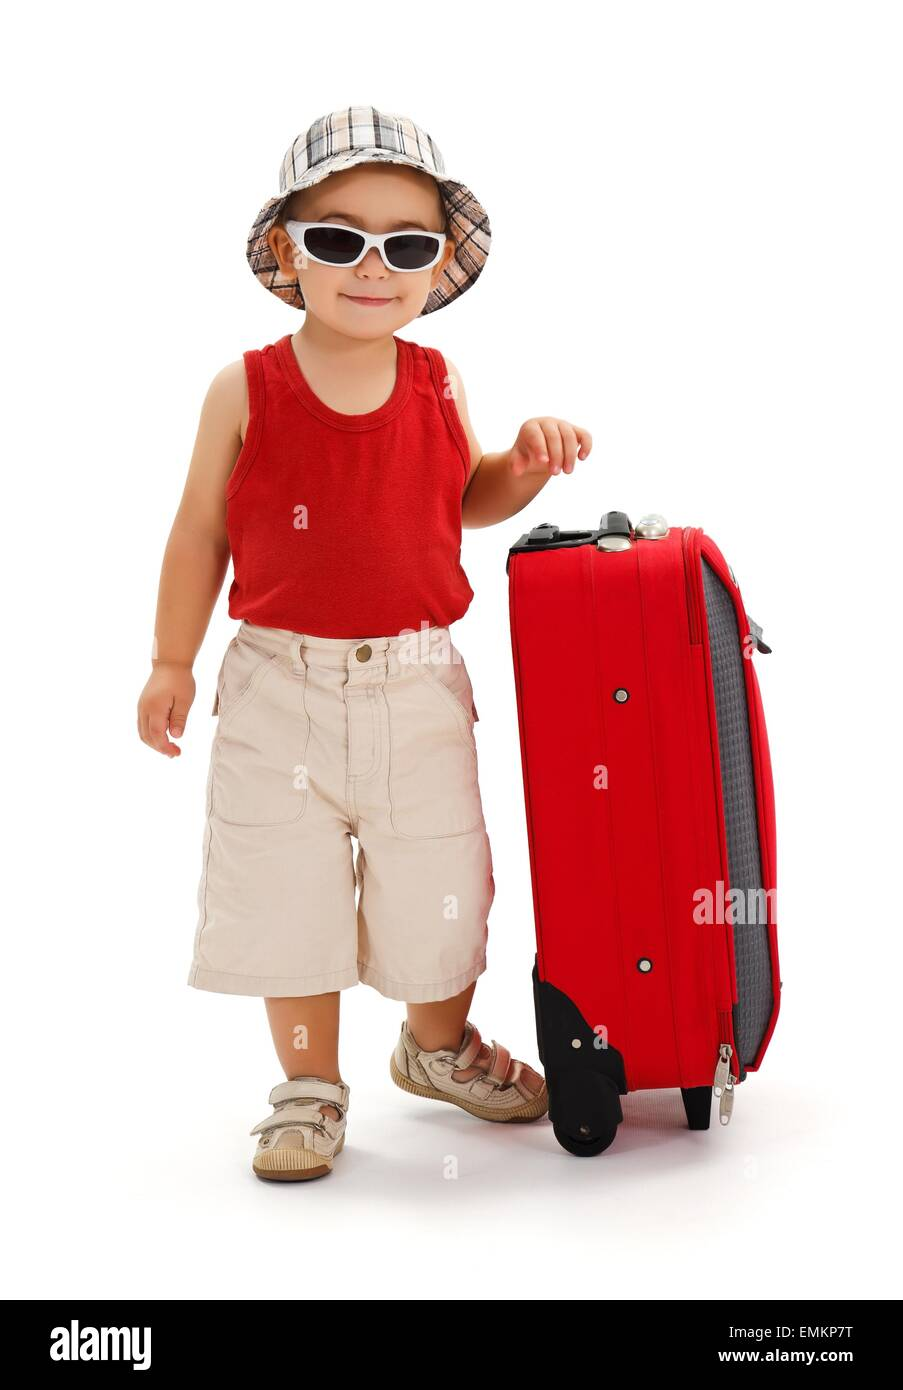 Little boy in sunglasses and hat, standing near luggage, ready for summer vacation - Stock Image